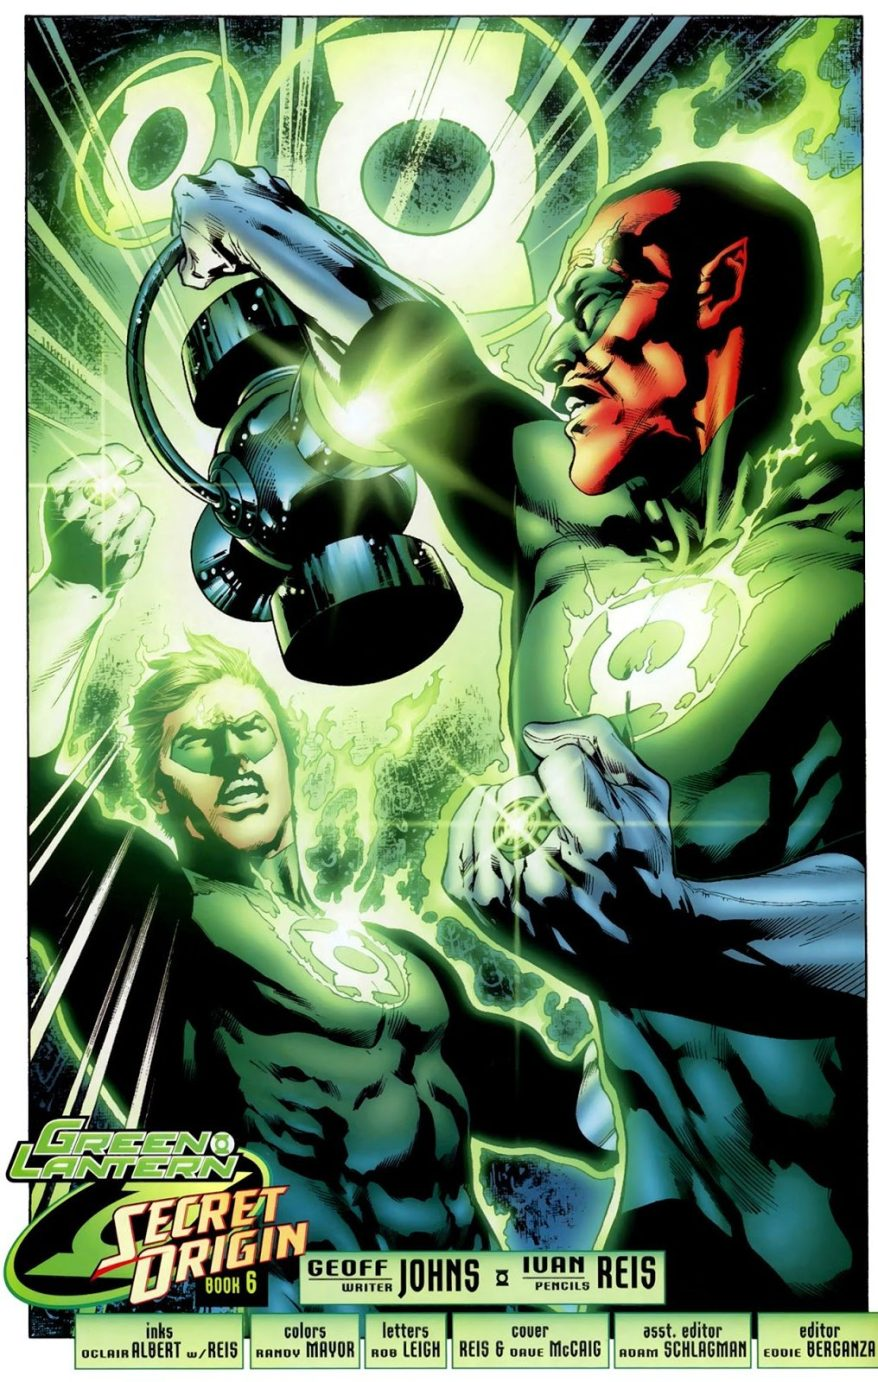 Hal Jordan And Sinestro (Green Lantern Vol. 4 #34))